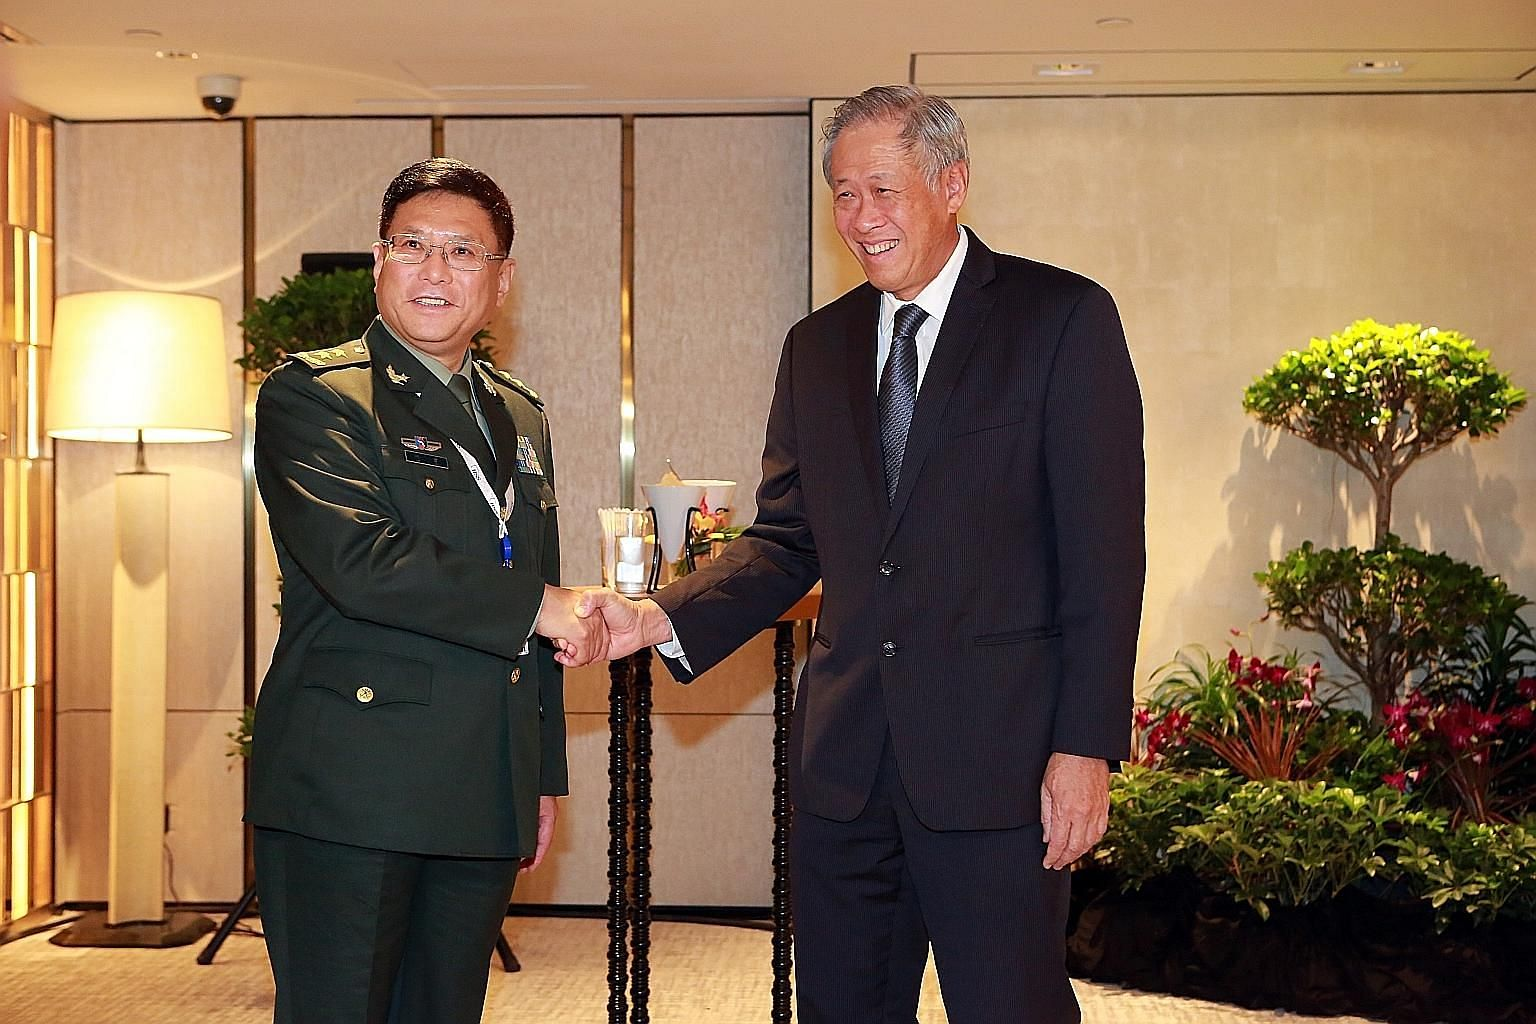 Defence Minister Ng Eng Hen greeting Lt-Gen He Lei, vice-president of the People's Liberation Army Academy of Military Sciences, at the Shangri-La Dialogue yesterday. Dr Ng and US Secretary of Defence James Mattis on their way to a breakfast meeting